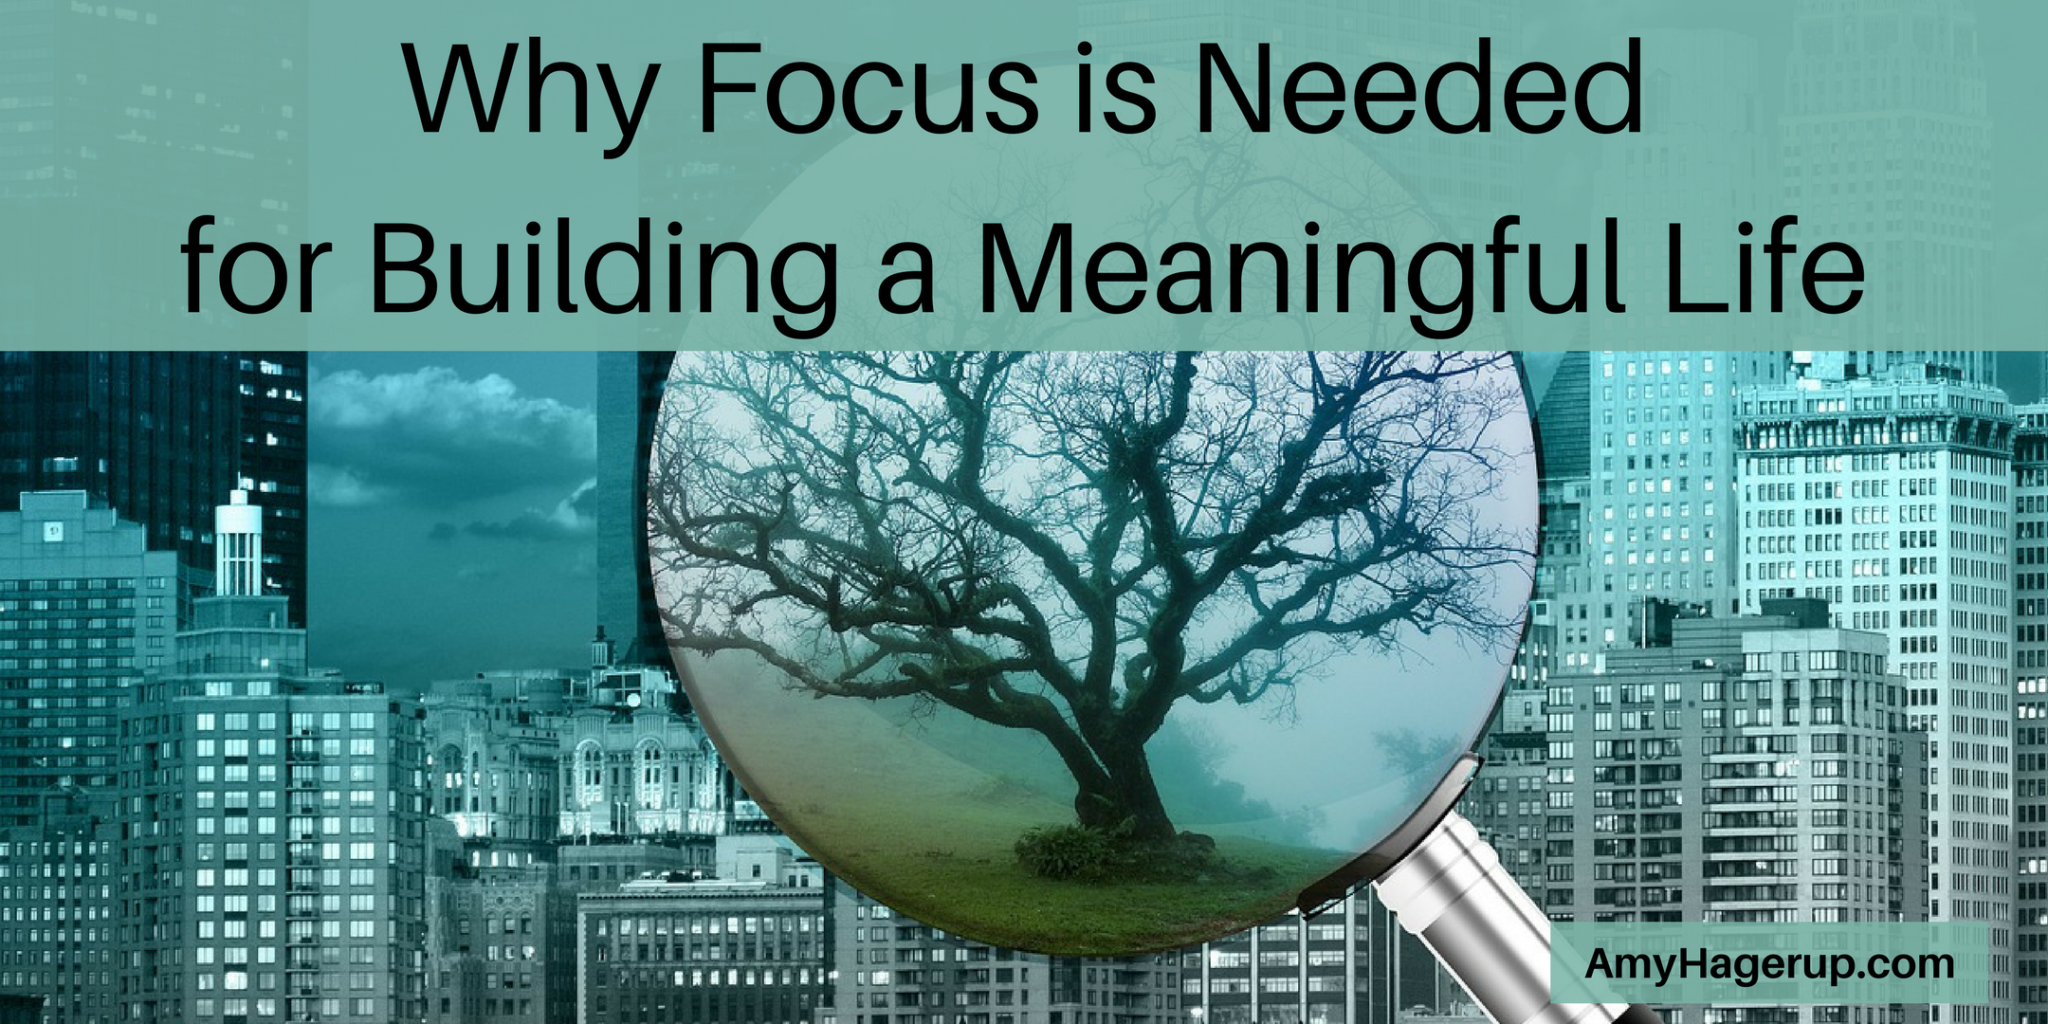 Check out why focus is needed to build a meaningful life